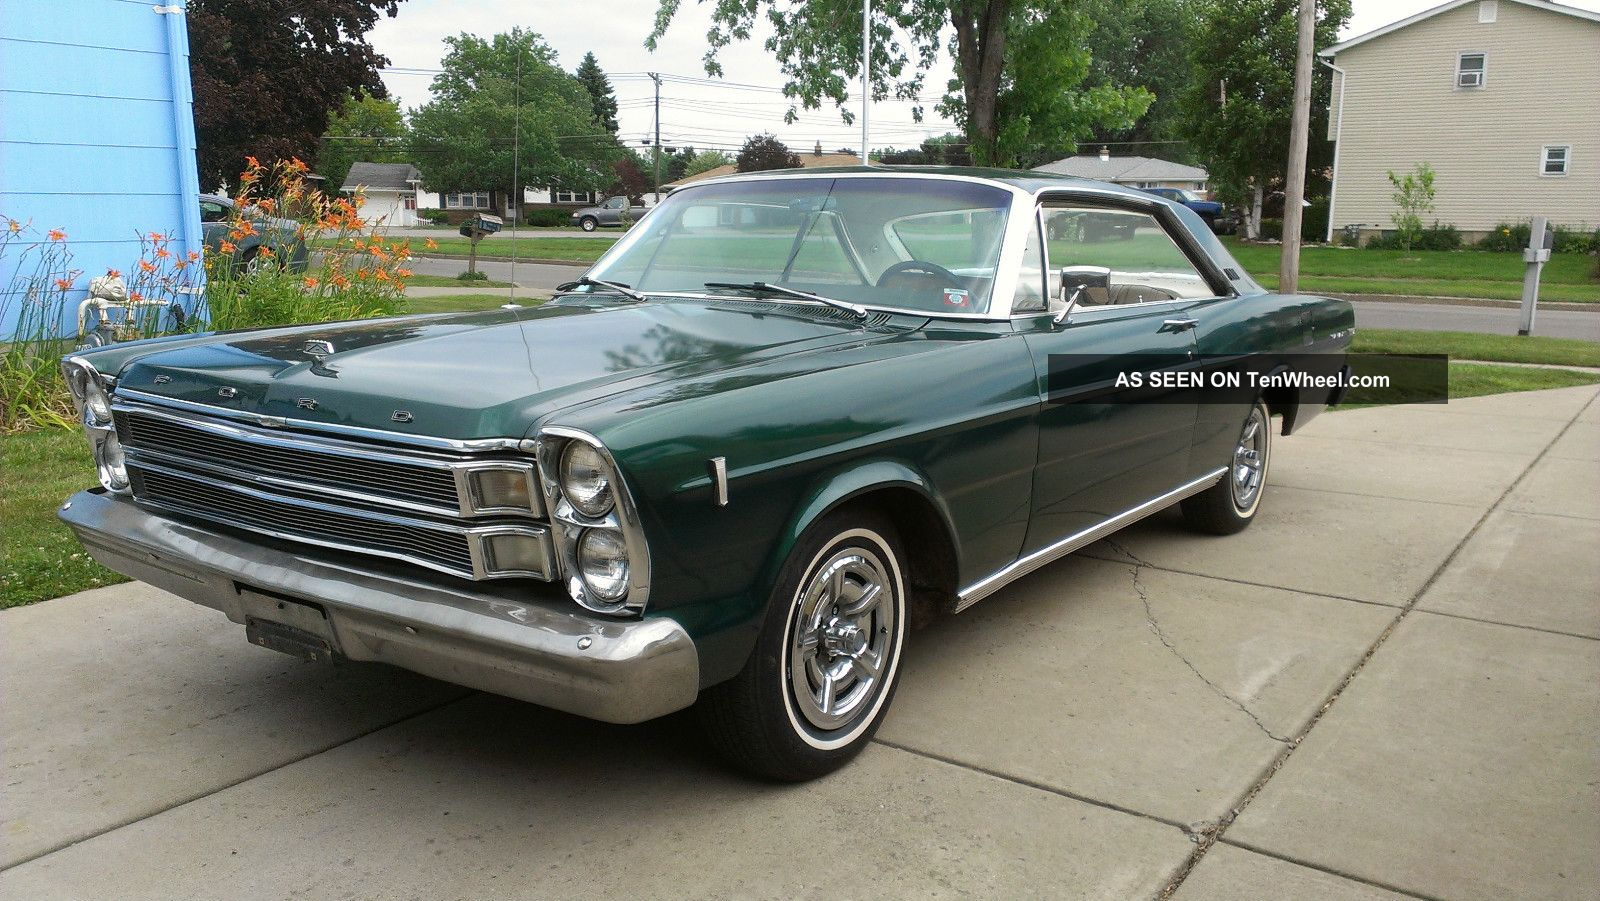 1966 Ford Galaxie 500 Xl Fastback Green W White